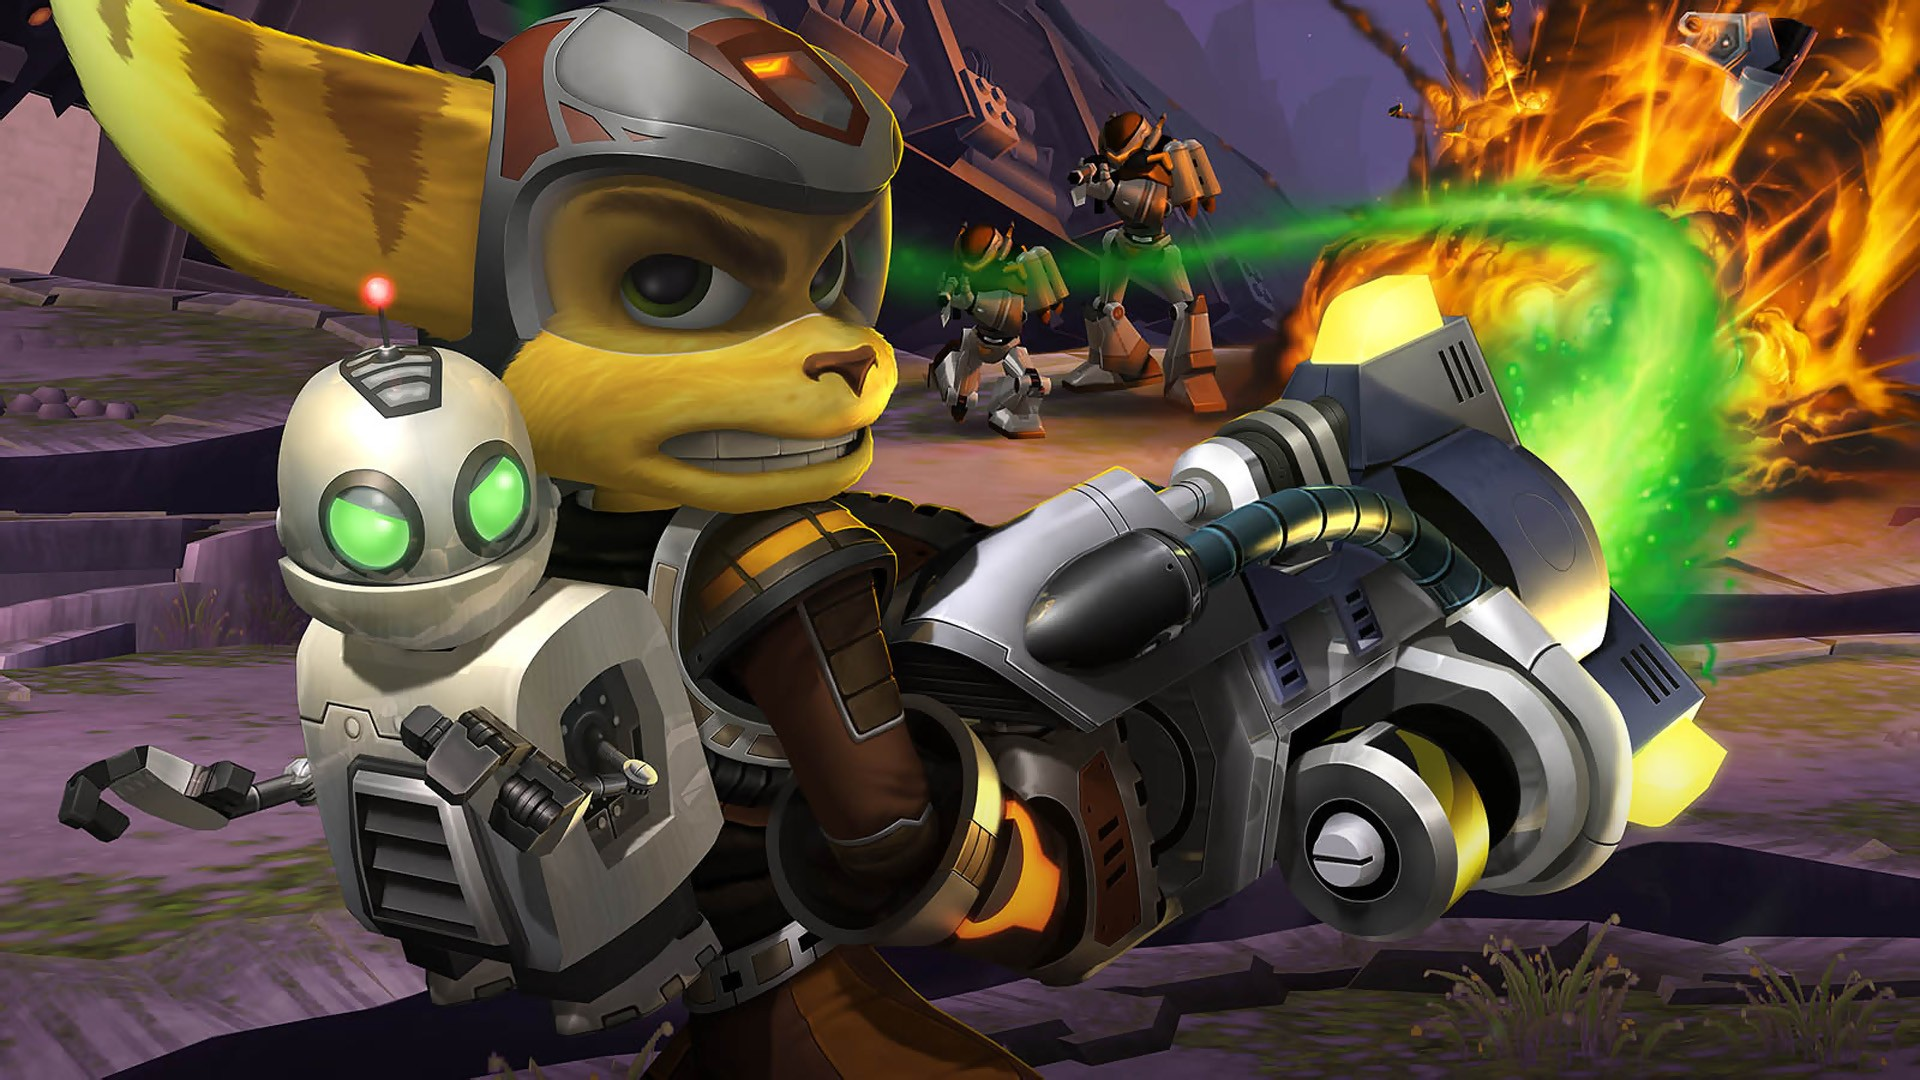 ratchet and clank ps4 iphone wallpaper